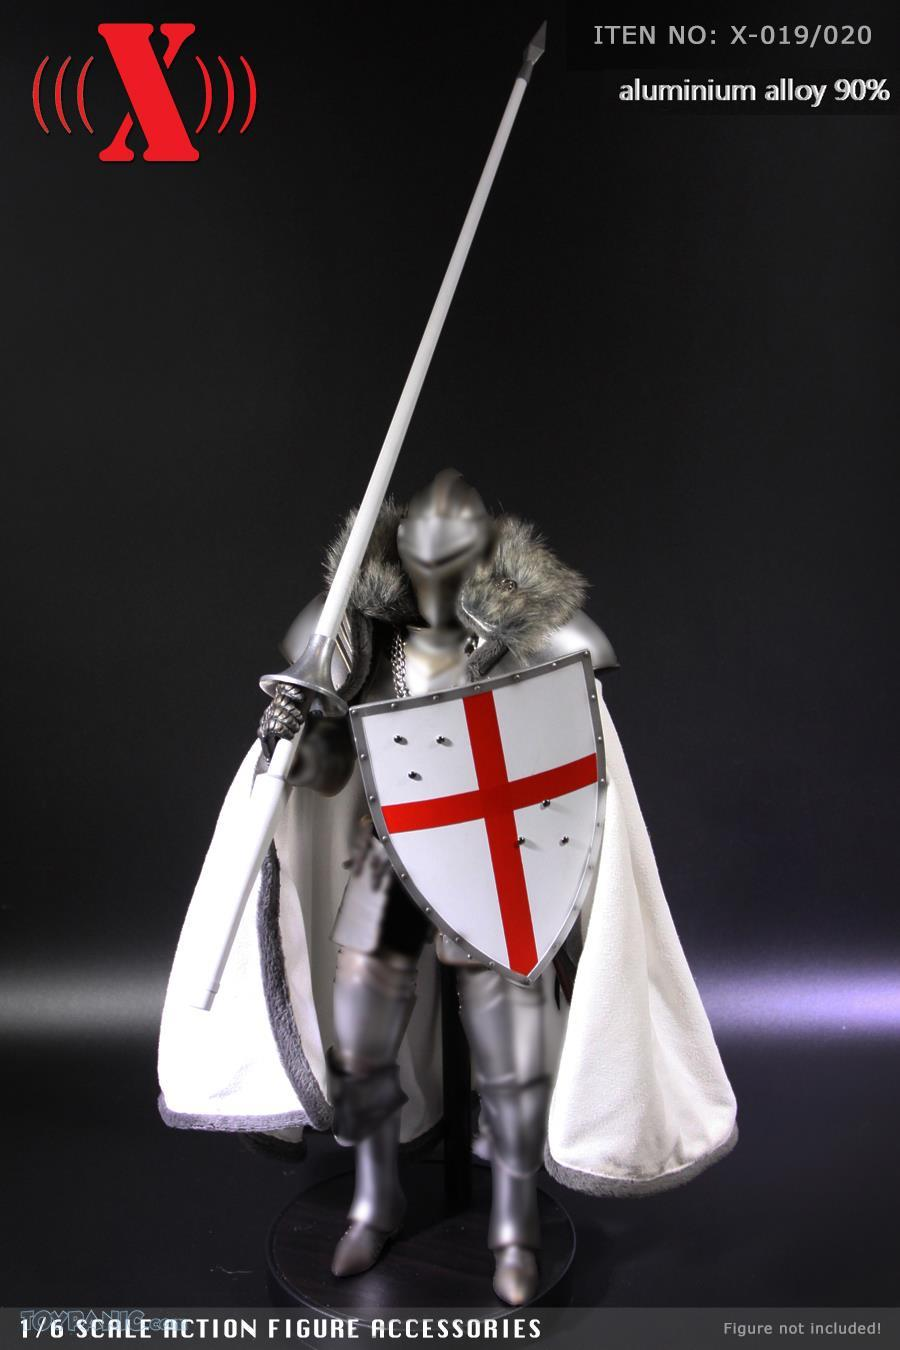 Shield - NEW PRODUCT: X TOYS: Medieval Weapons: Alloy Spear (Lance) (2 styles) & Aluminum Alloy Shield (4 styles) 11146